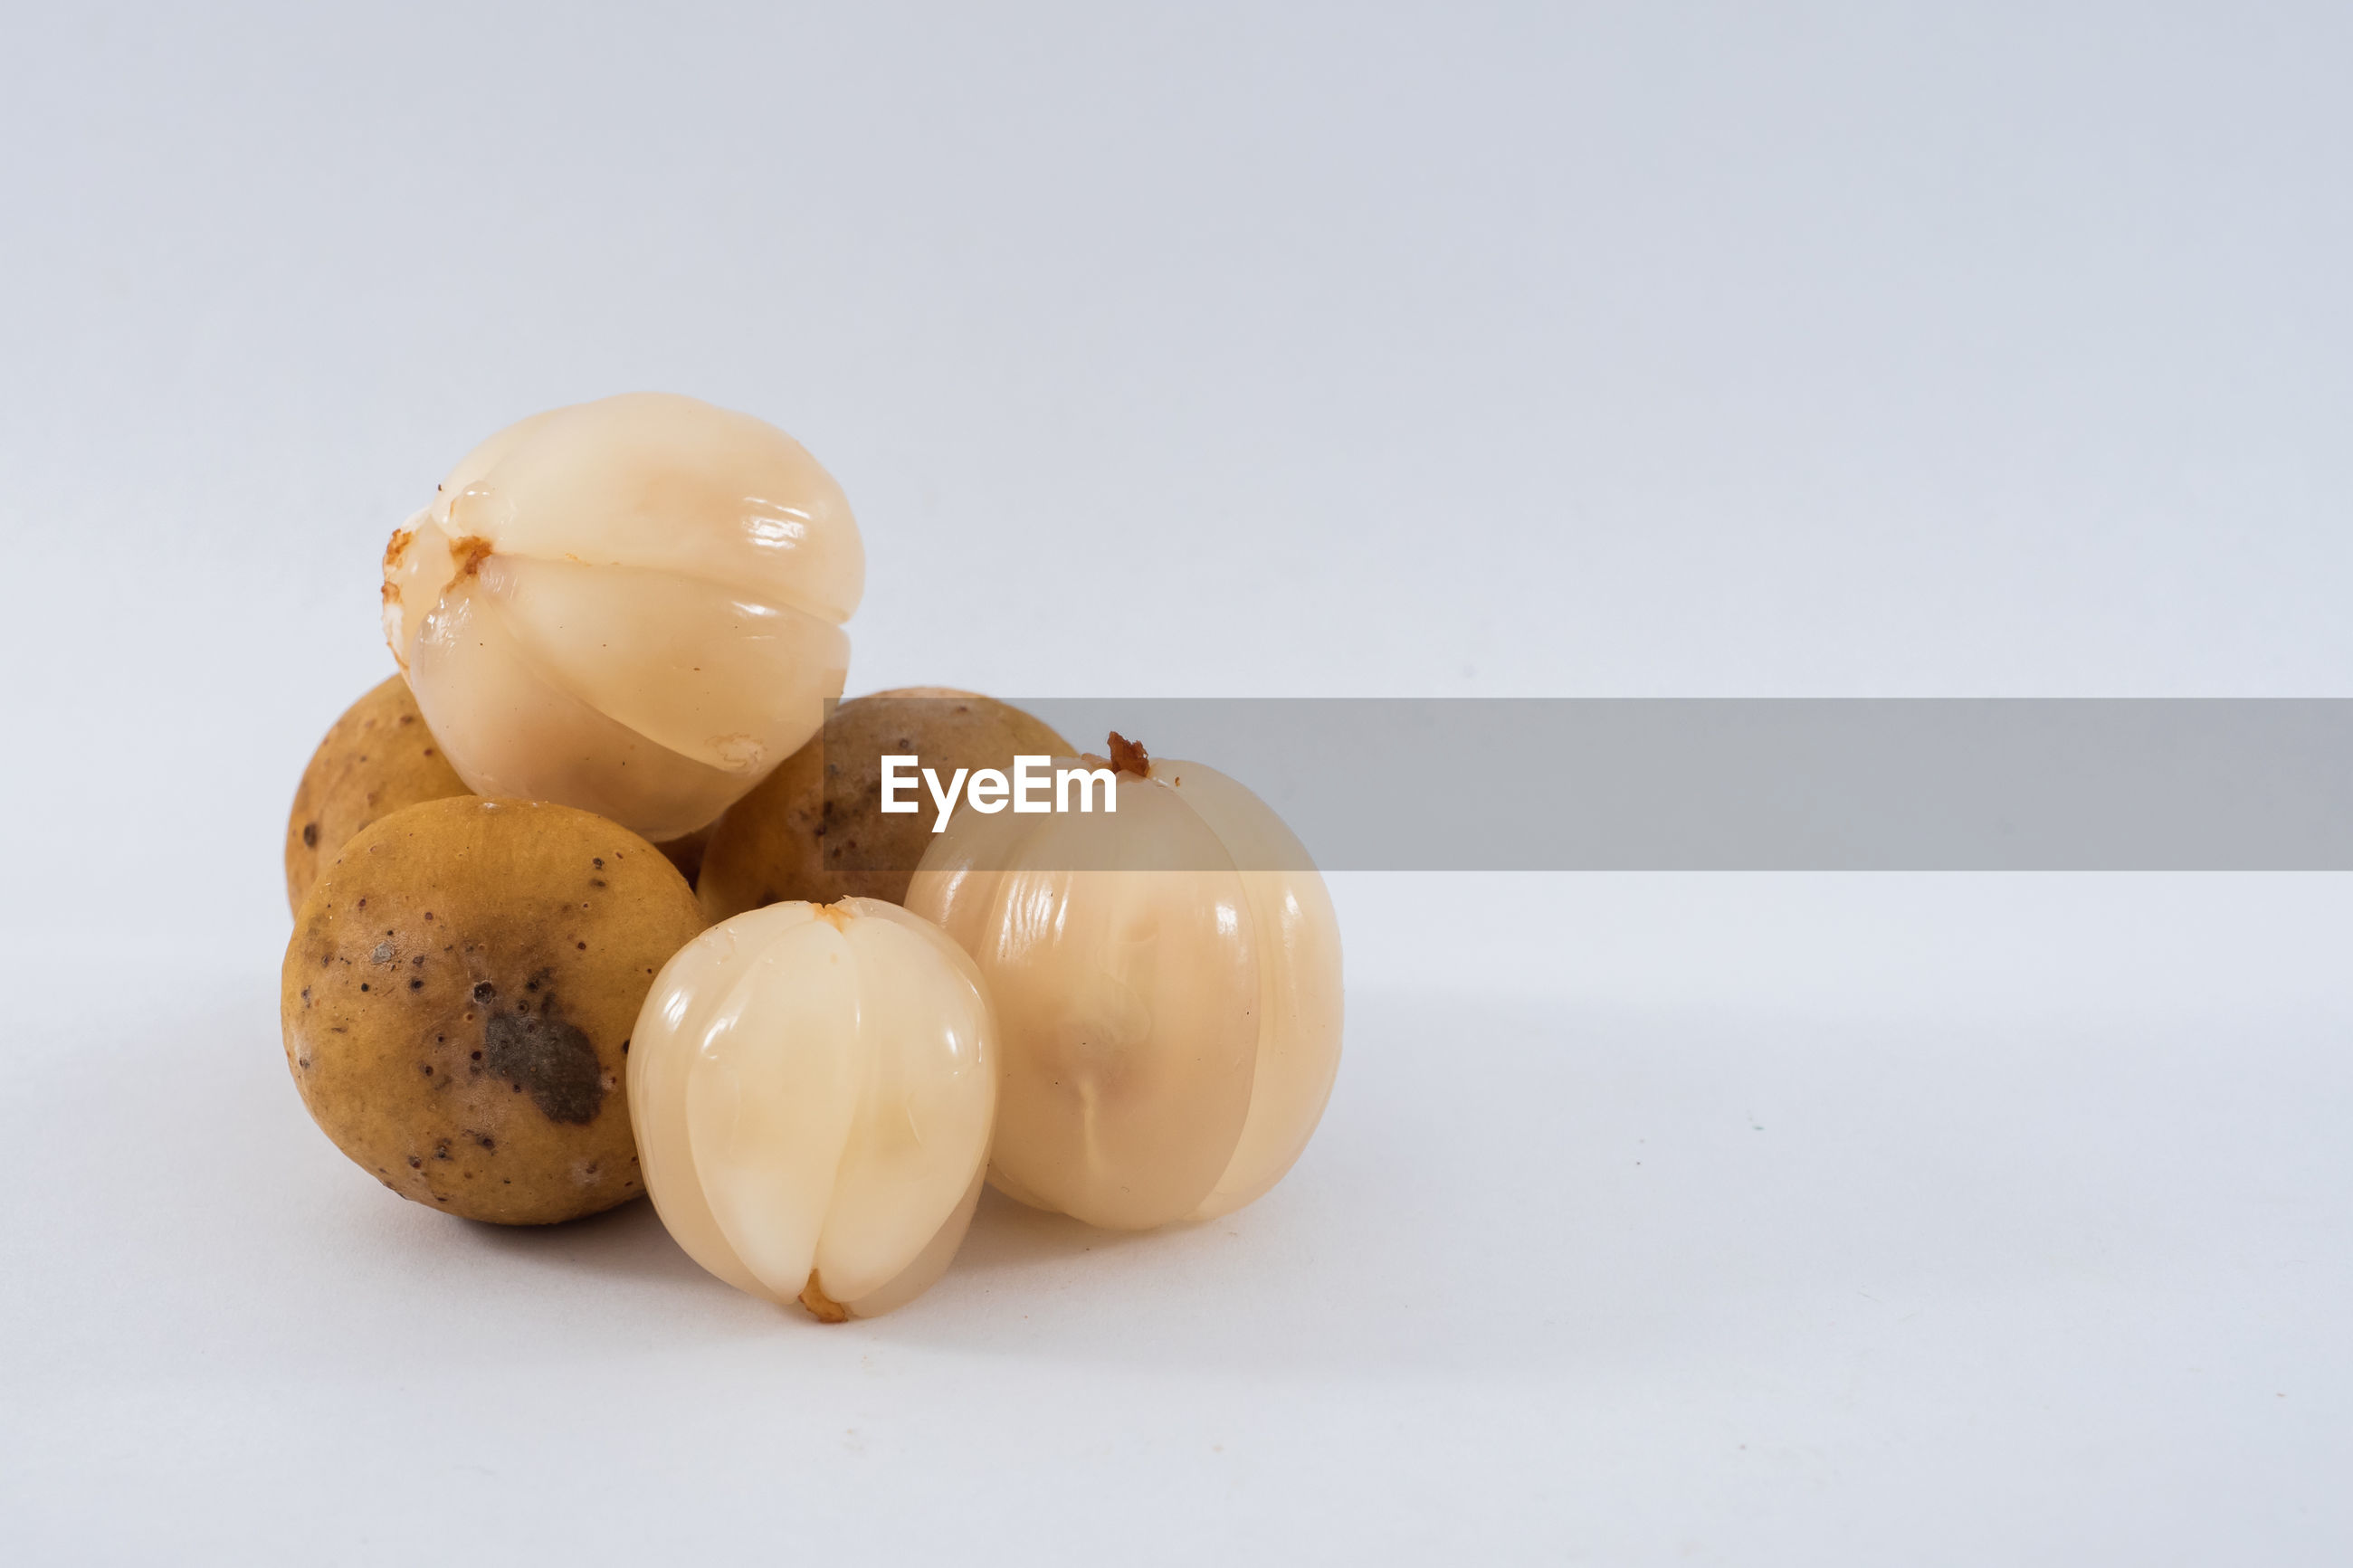 HIGH ANGLE VIEW OF EGGS IN WHITE BACKGROUND